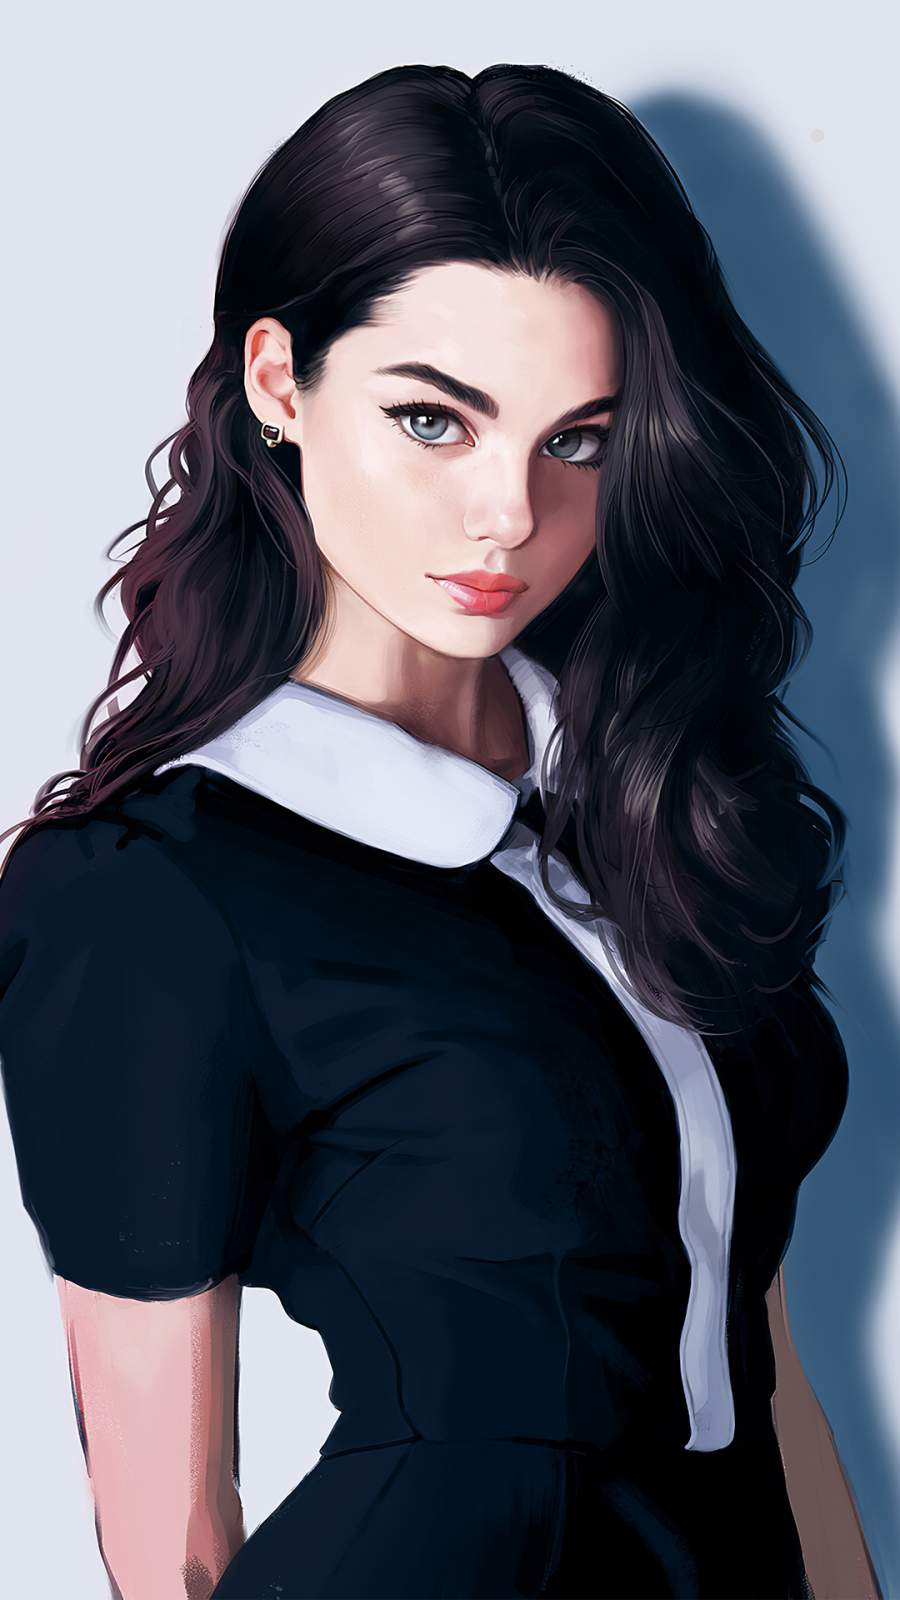 Dark Blacked Hair Girl iPhone Wallpaper